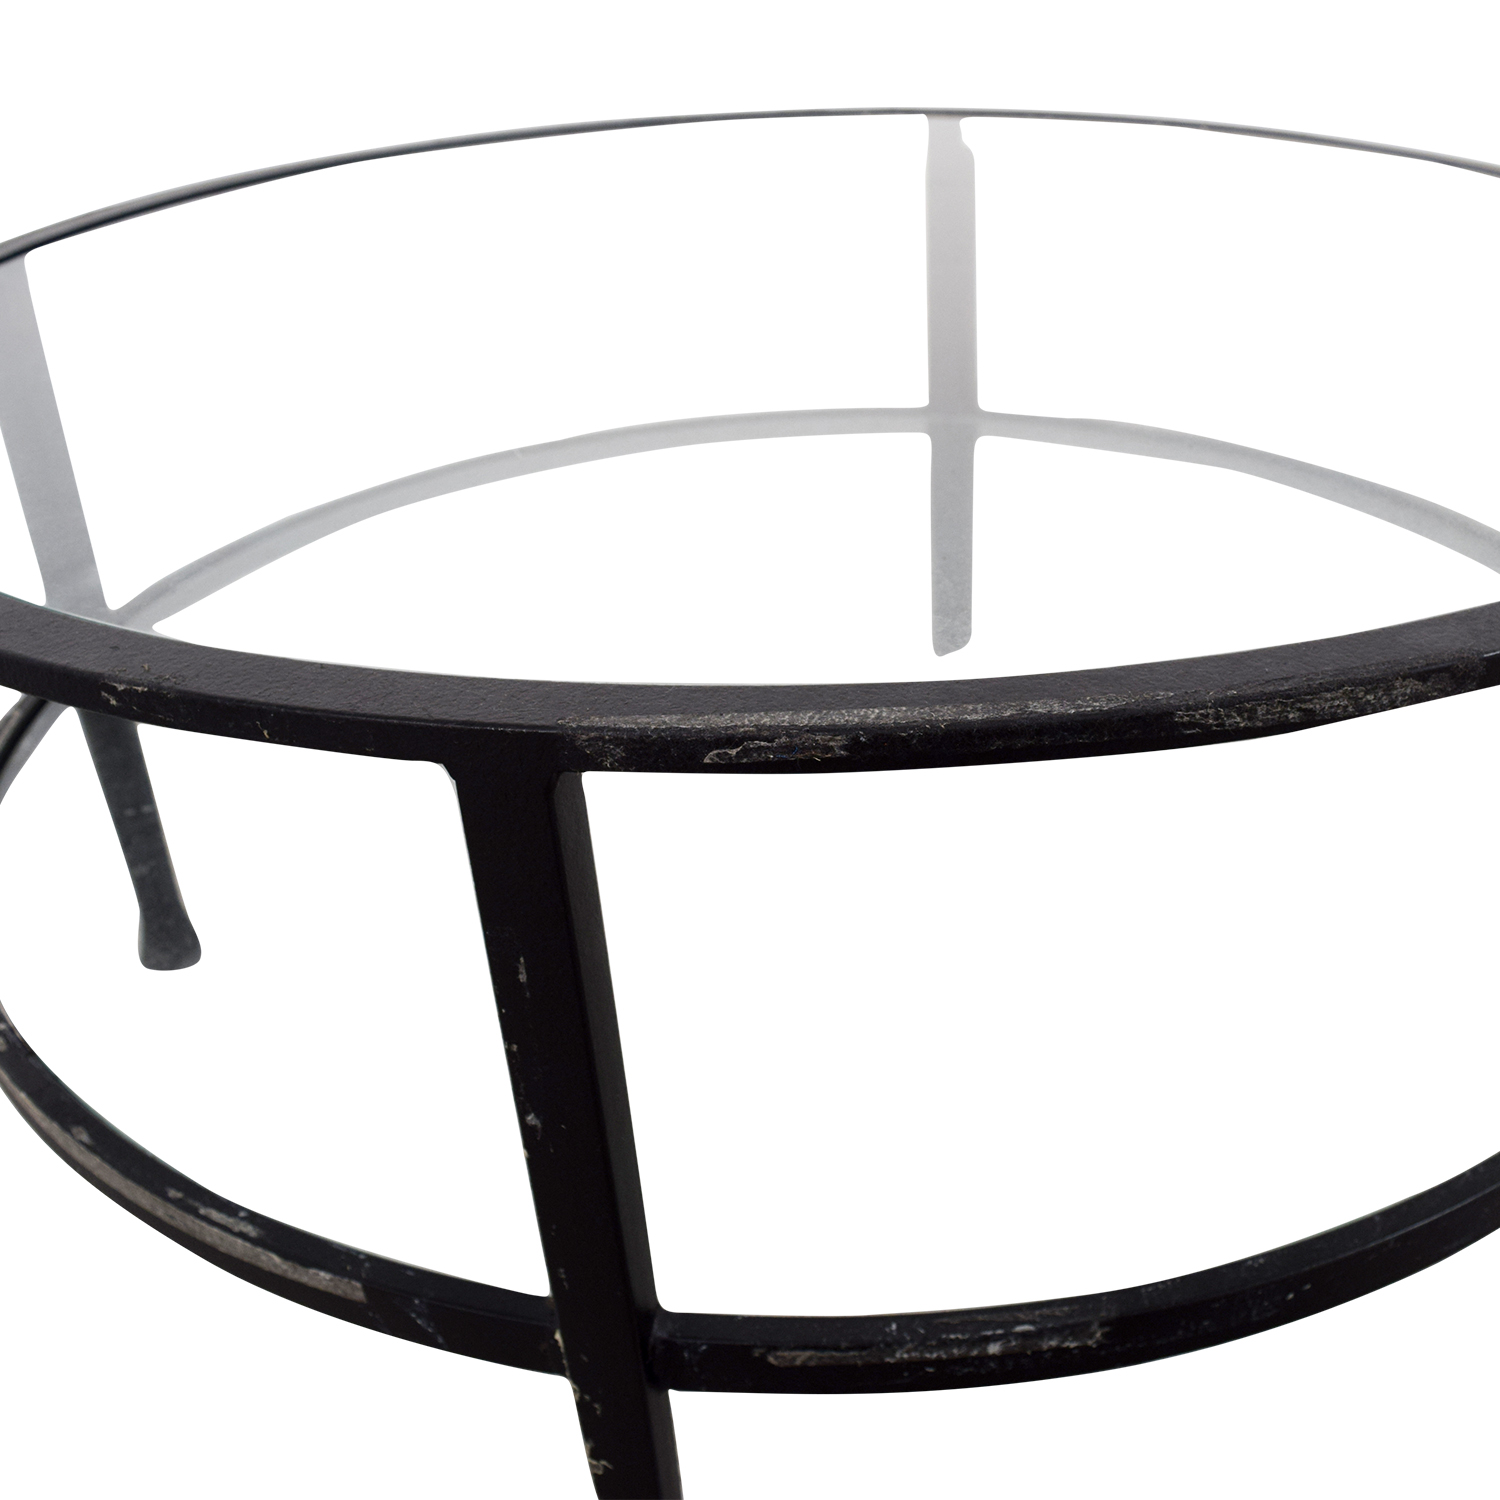 62% OFF Pottery Barn Pottery Barn Round Glass Coffee Table Tables